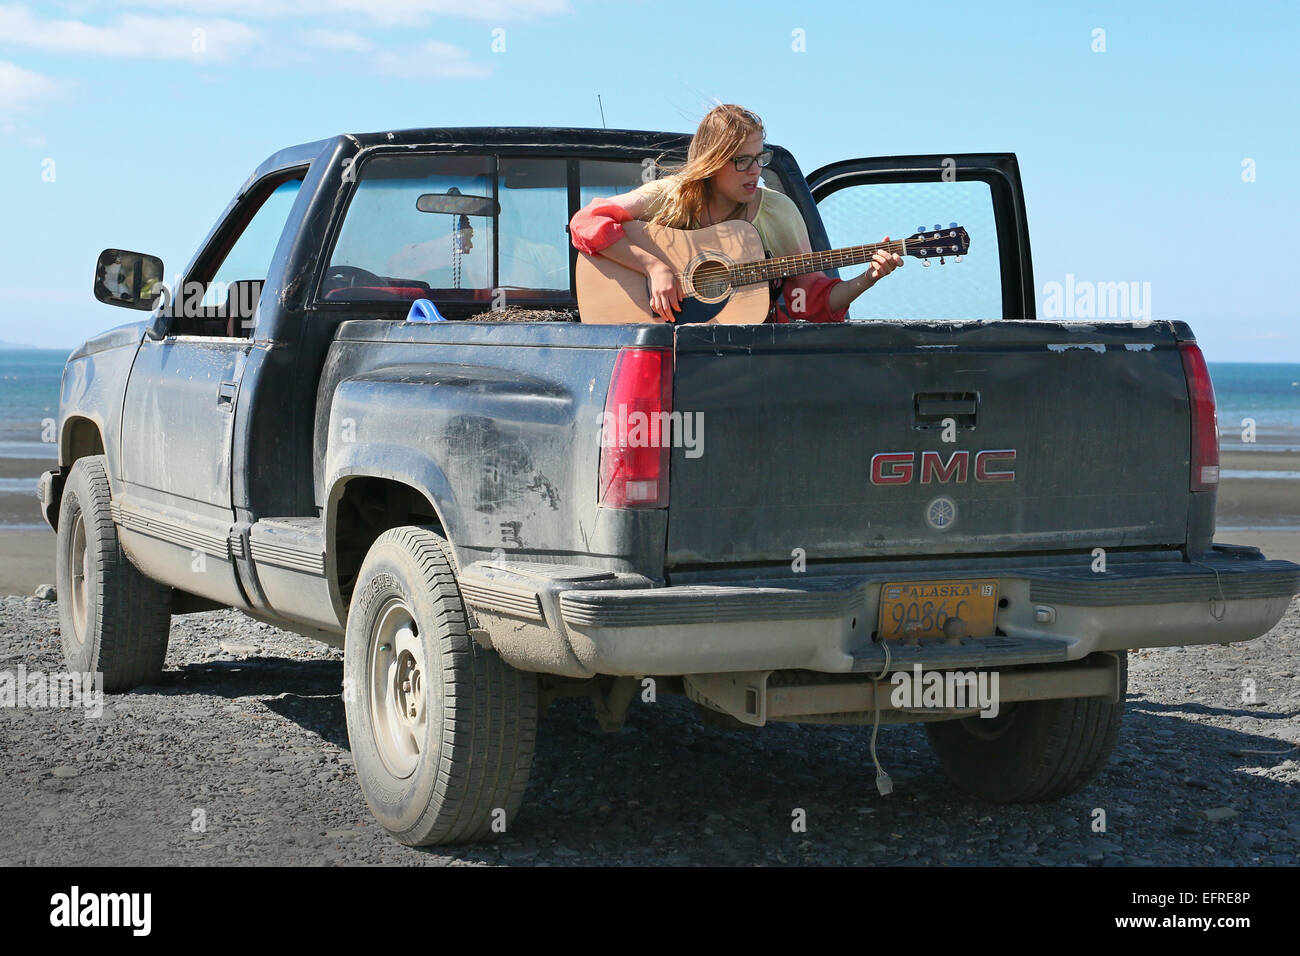 Bed Of A Truck >> Young Lady Playing Her Guitar Sitting On The Bed Of A Truck In Homer